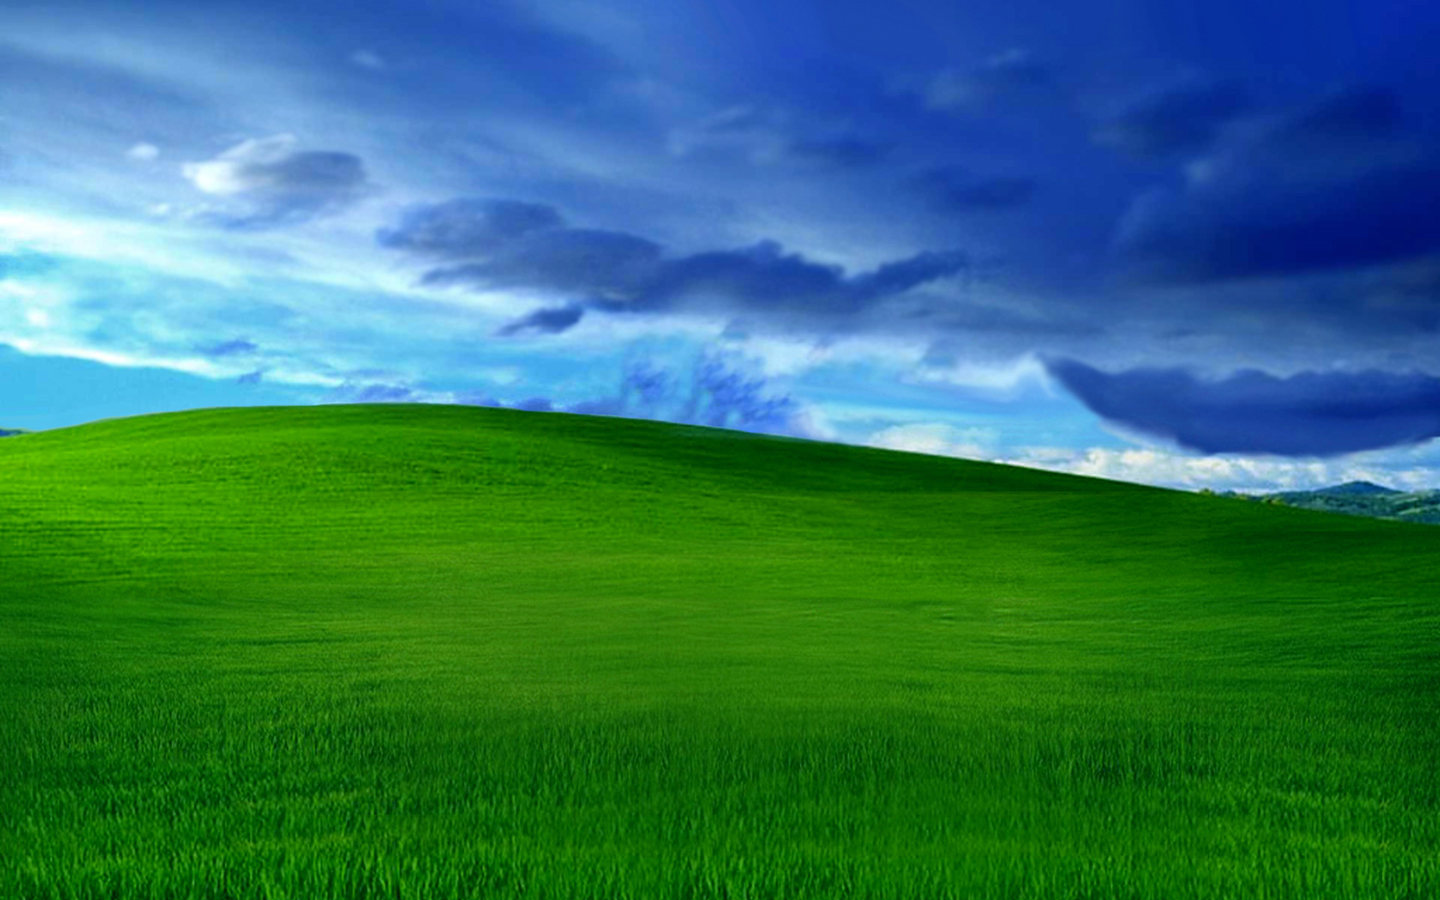 Windows xp nature wallpaper hd